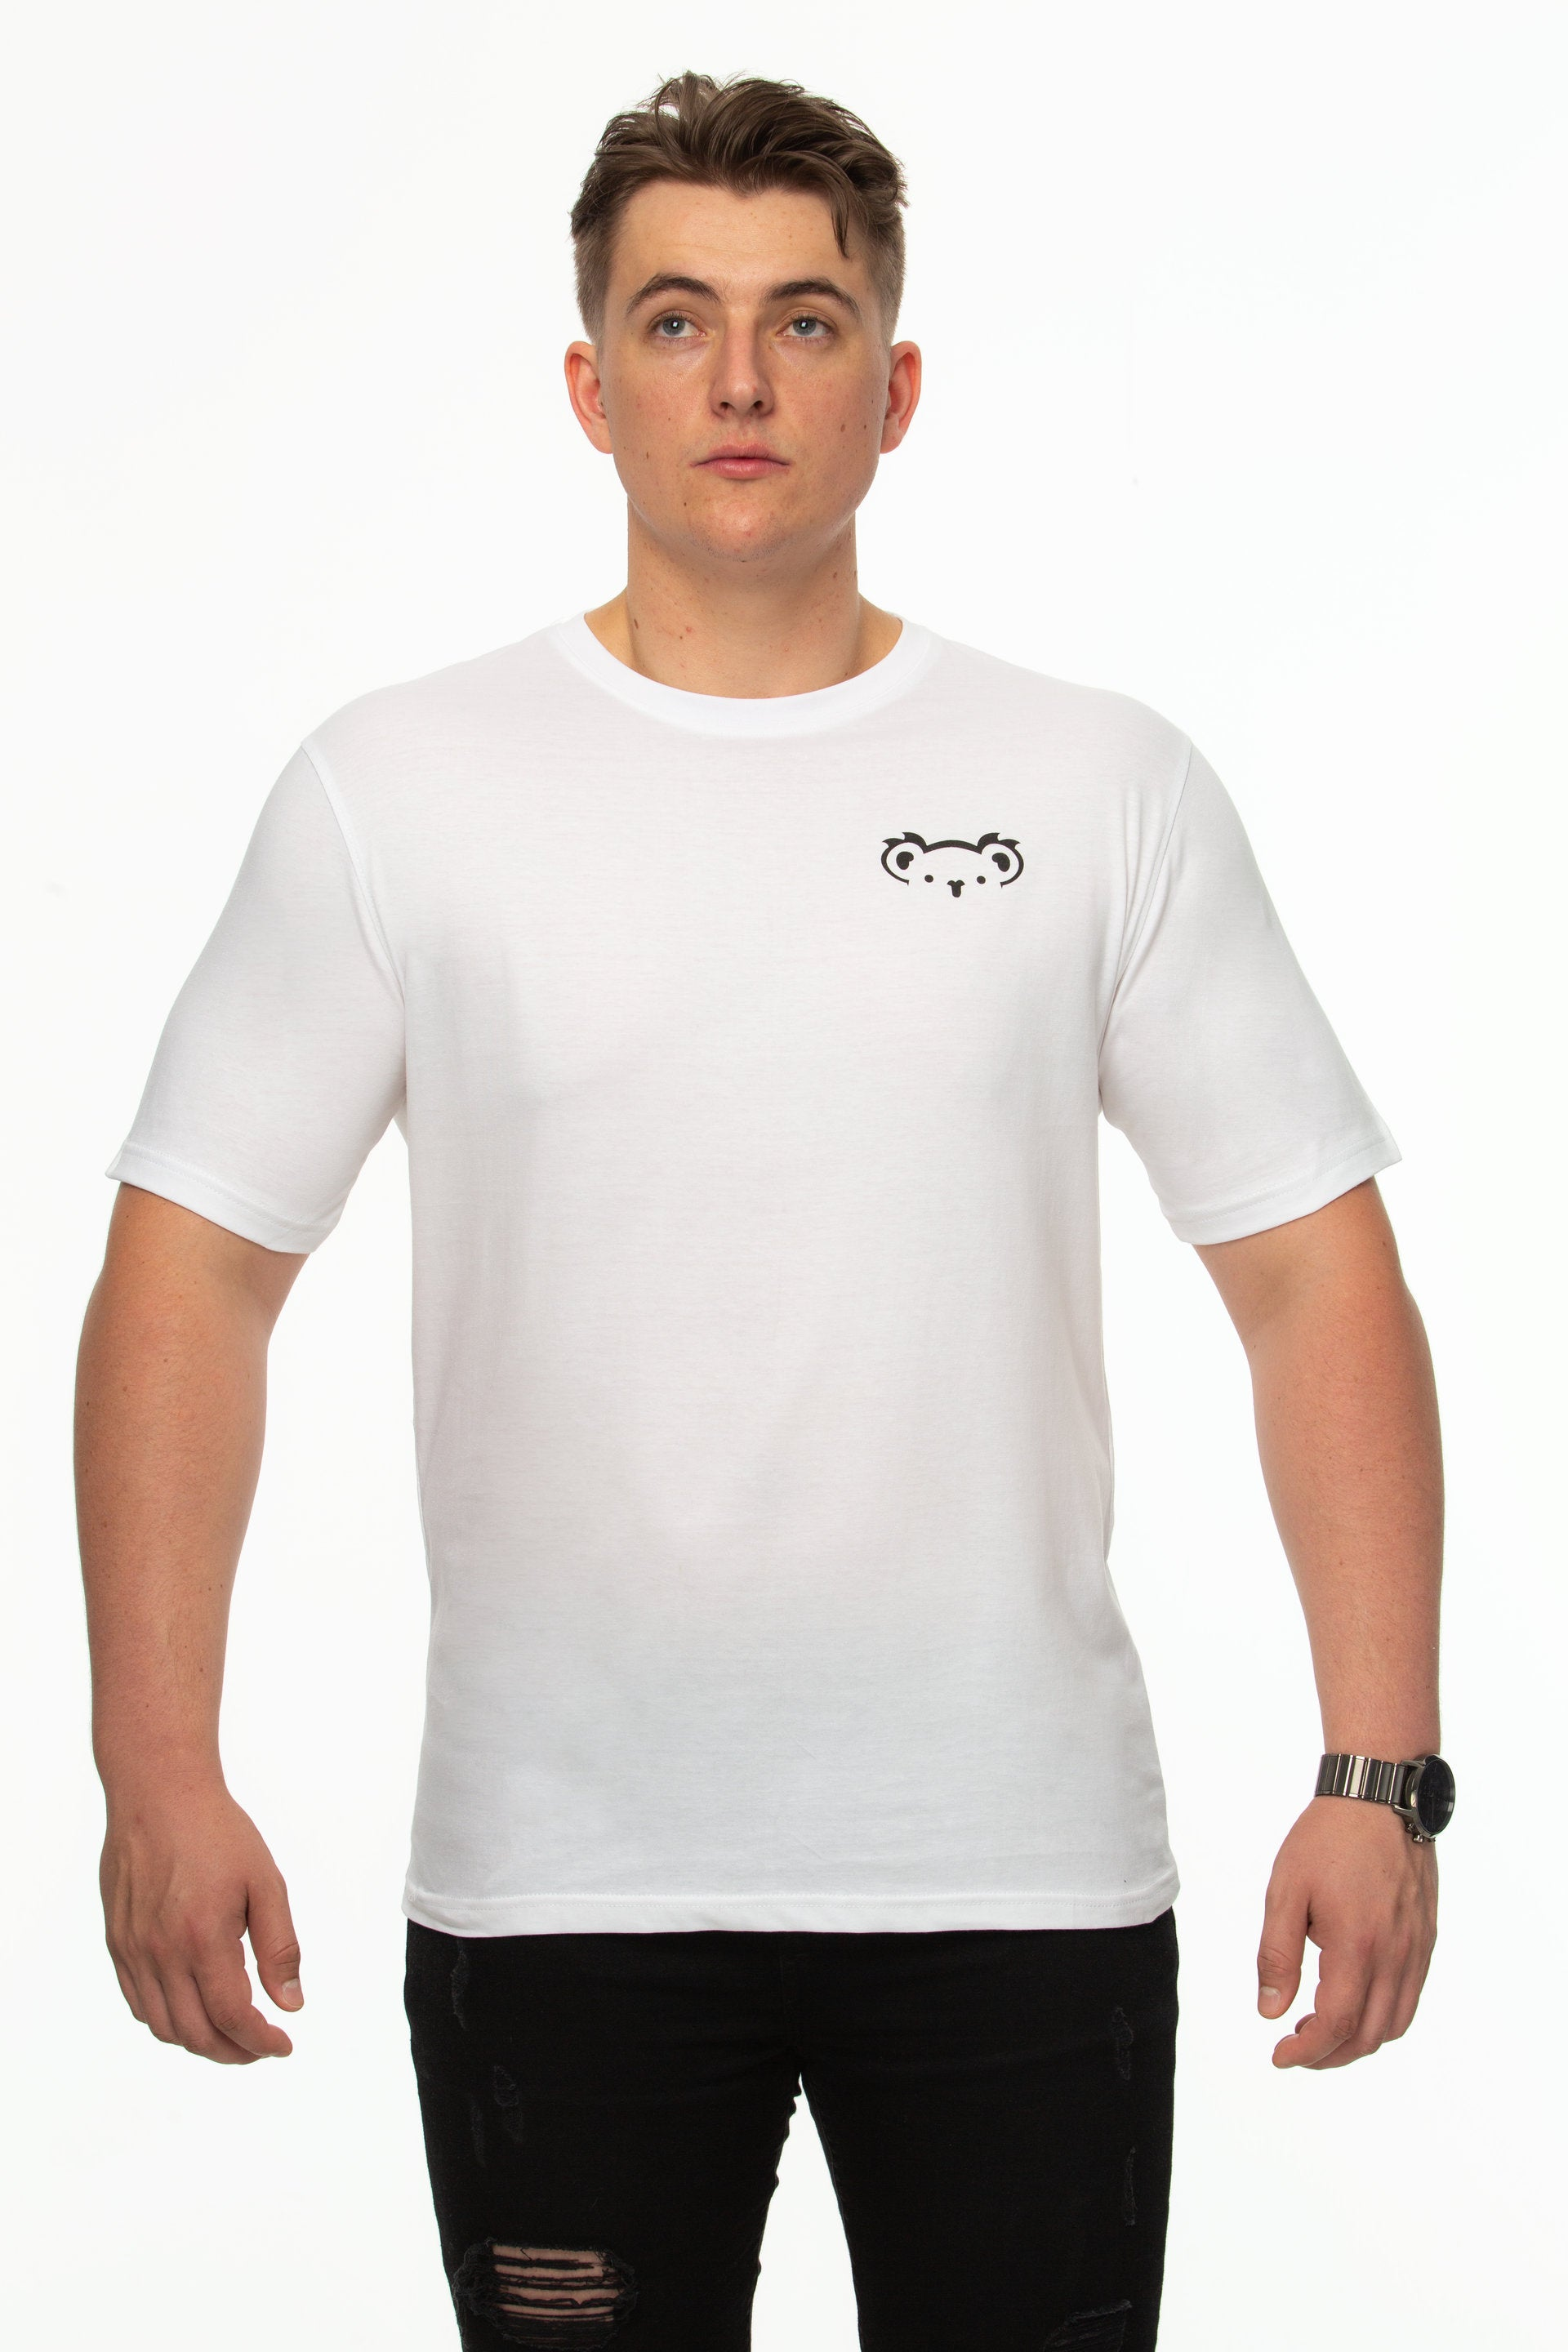 Tipsy Koala Men's Printed Cotton T Shirt - Koala Logo